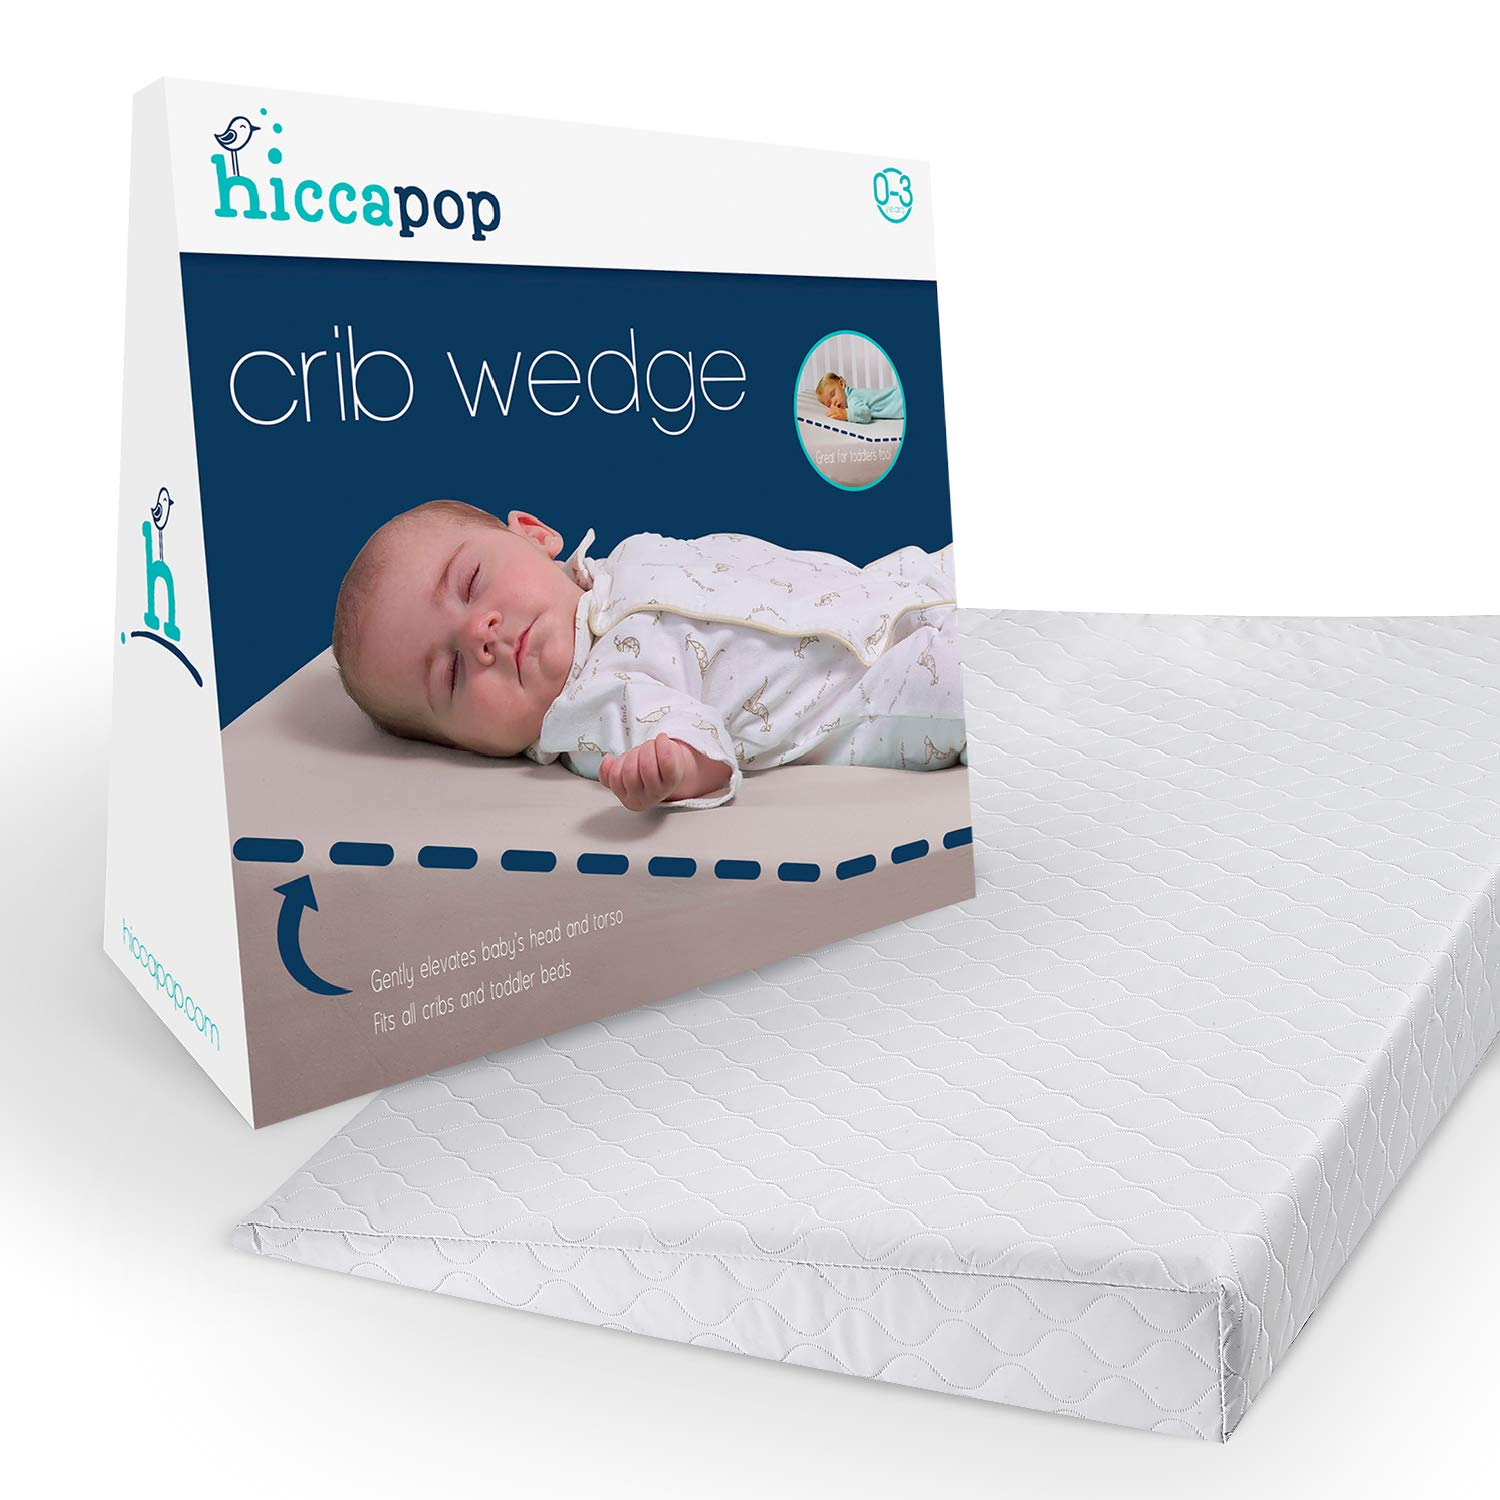 hiccapop Foldable Safe Lift Universal Crib Wedge for Baby Mattress and Sleep by hiccapop